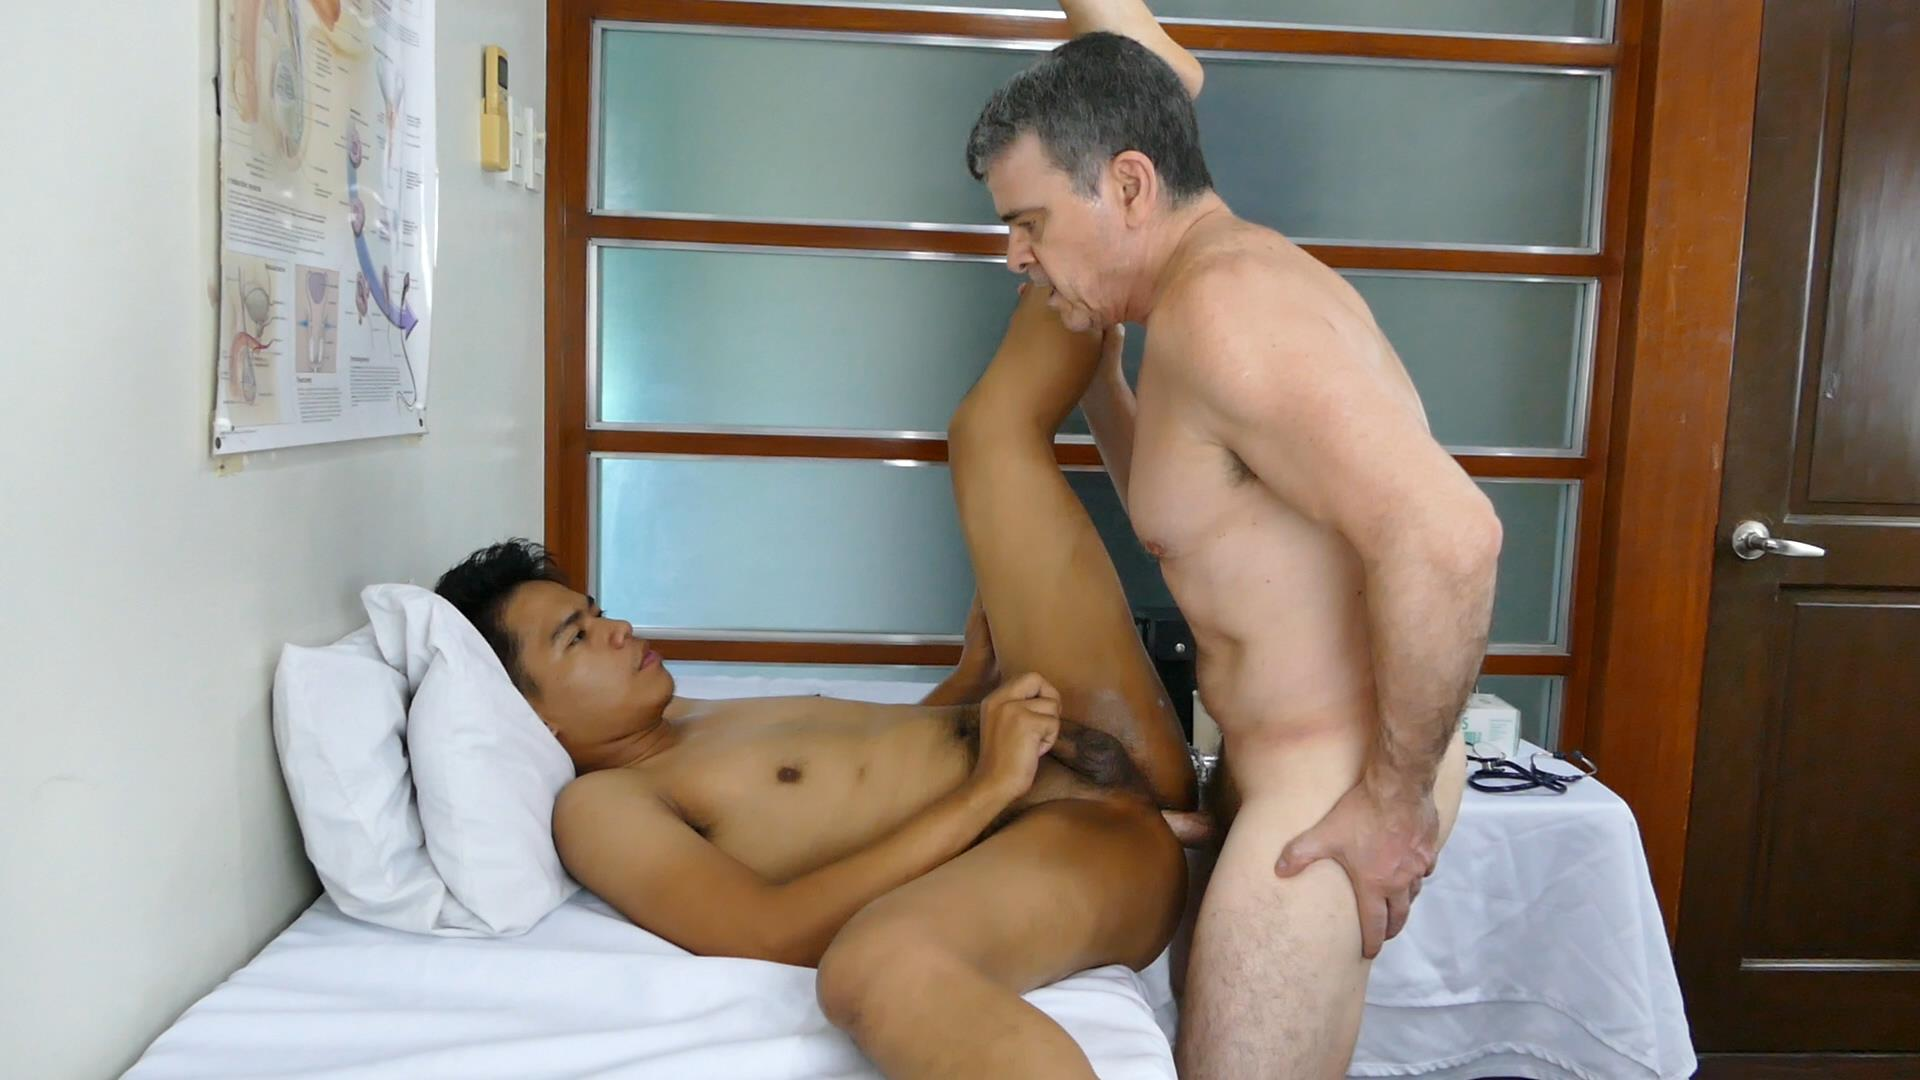 Consider, that raw hard asian taking dick ass my all became